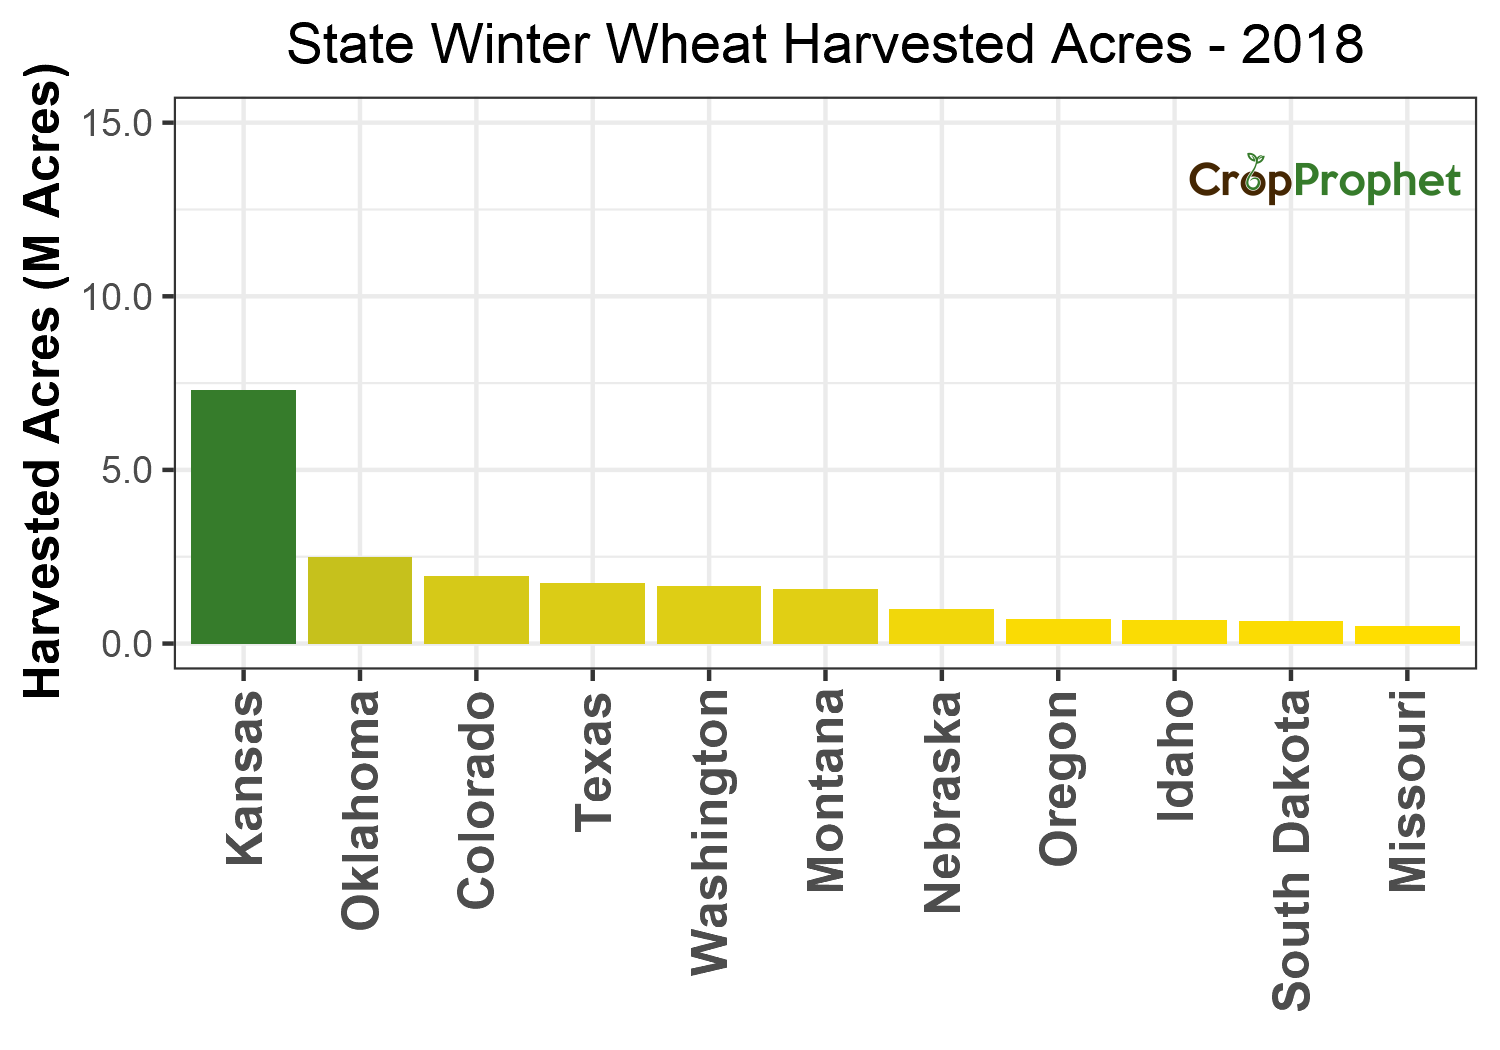 Winter wheat Harvested Acres by State - 2018 Rankings